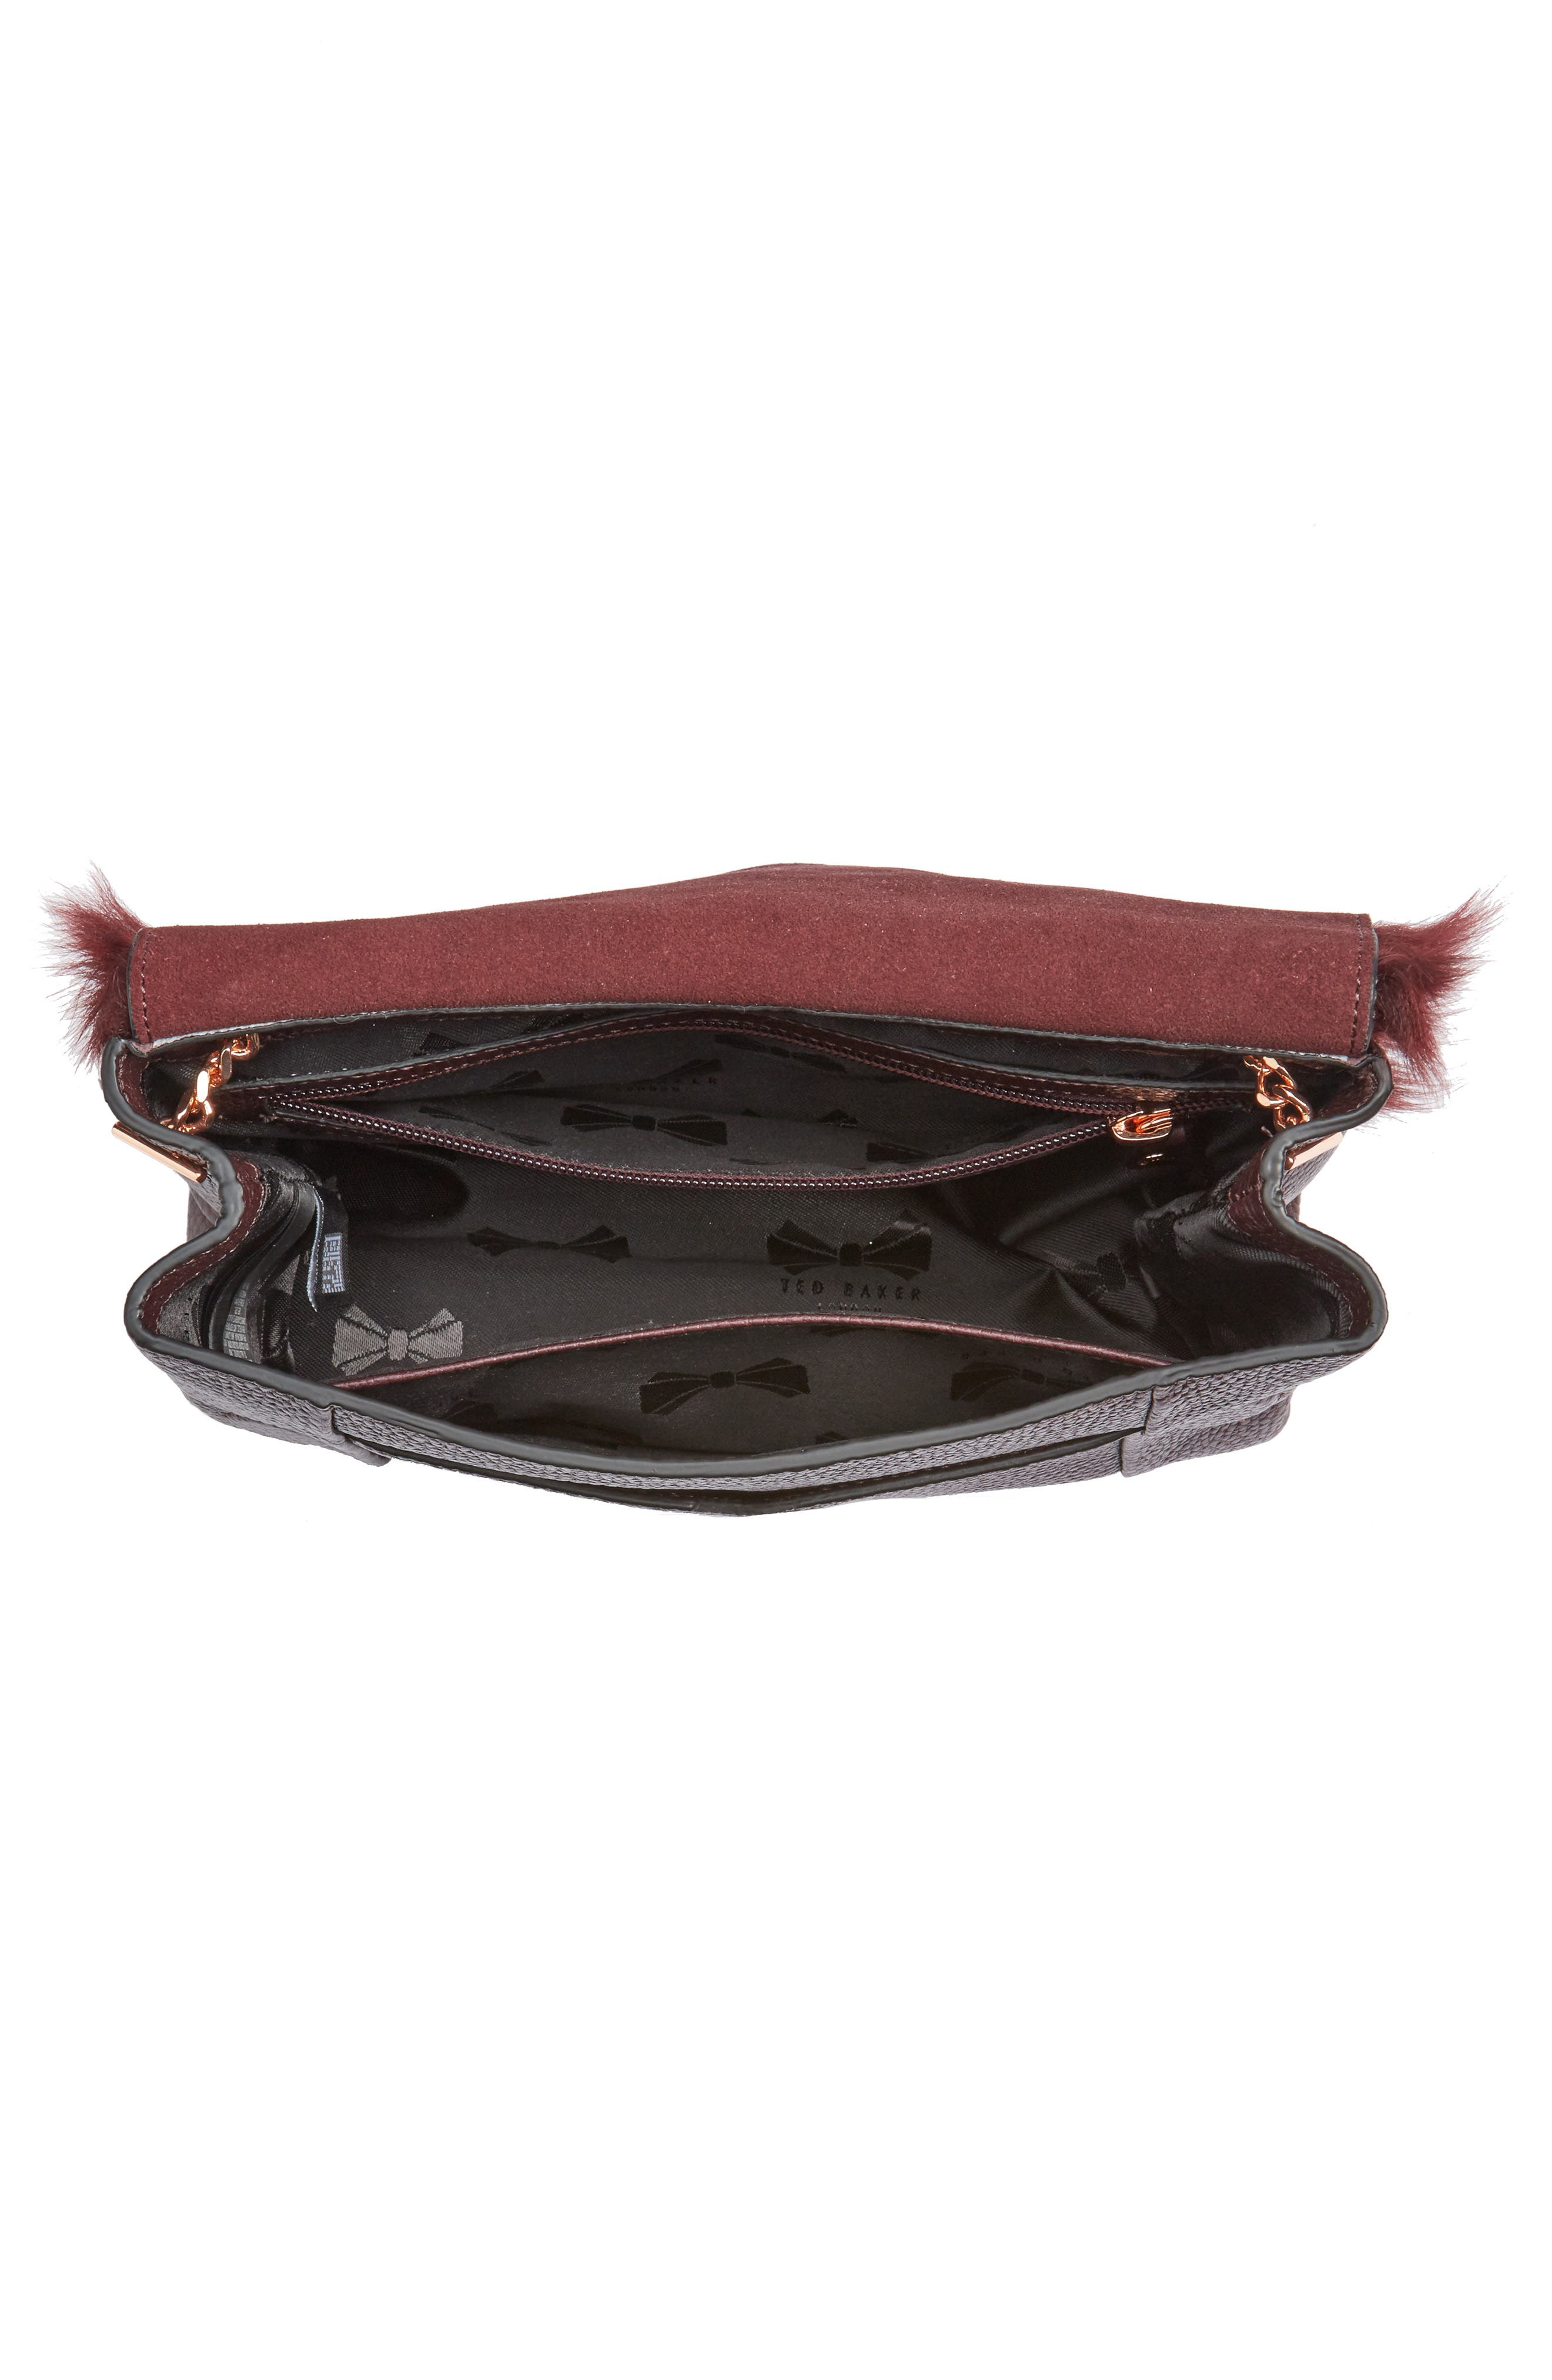 Fuzzi Genuine Shearling & Leather Convertible Crossbody Bag,                             Alternate thumbnail 3, color,                             Maroon